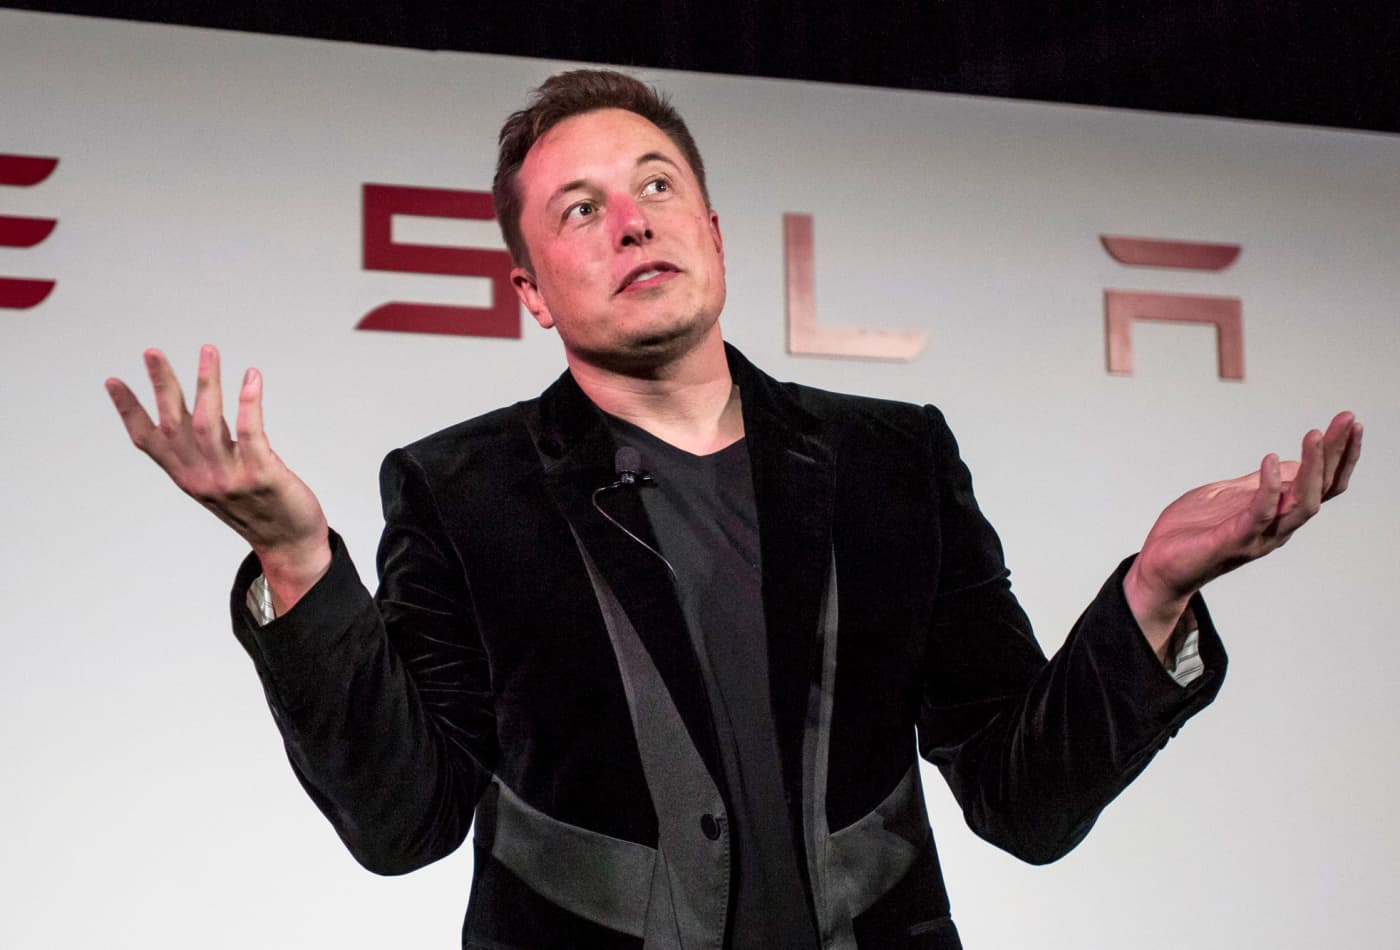 Why Tesla's Elon Musk asks job applicants this key interview